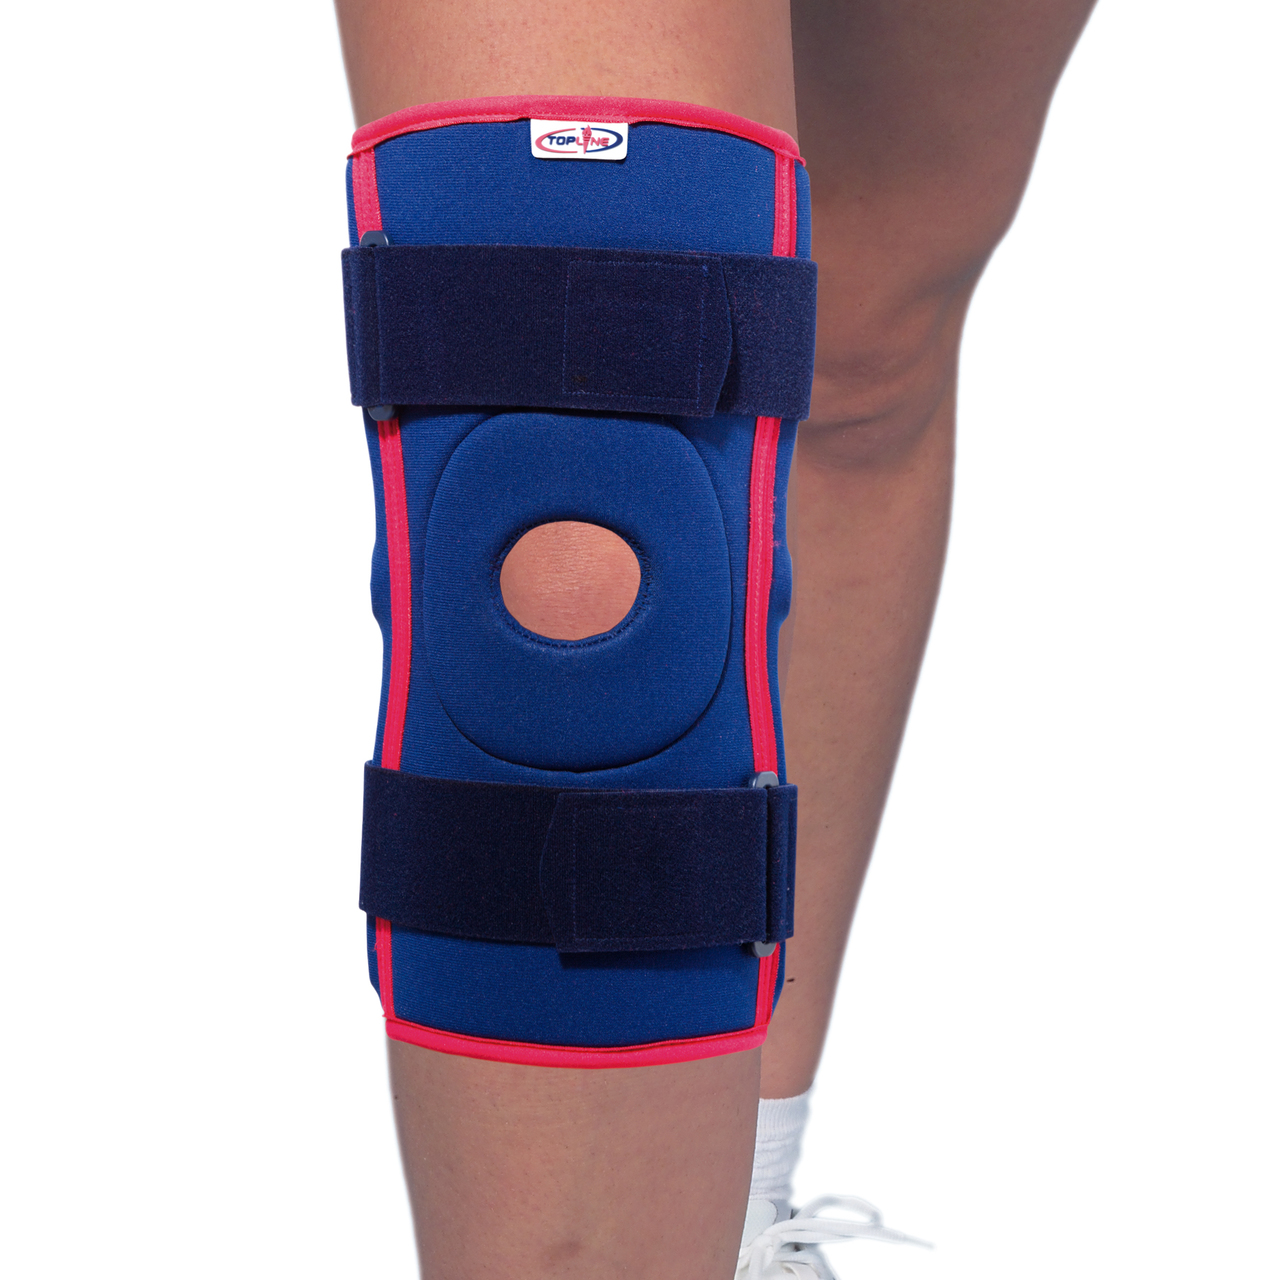 c381bf7506 TopLine Knee Support with Joints. Loading zoom